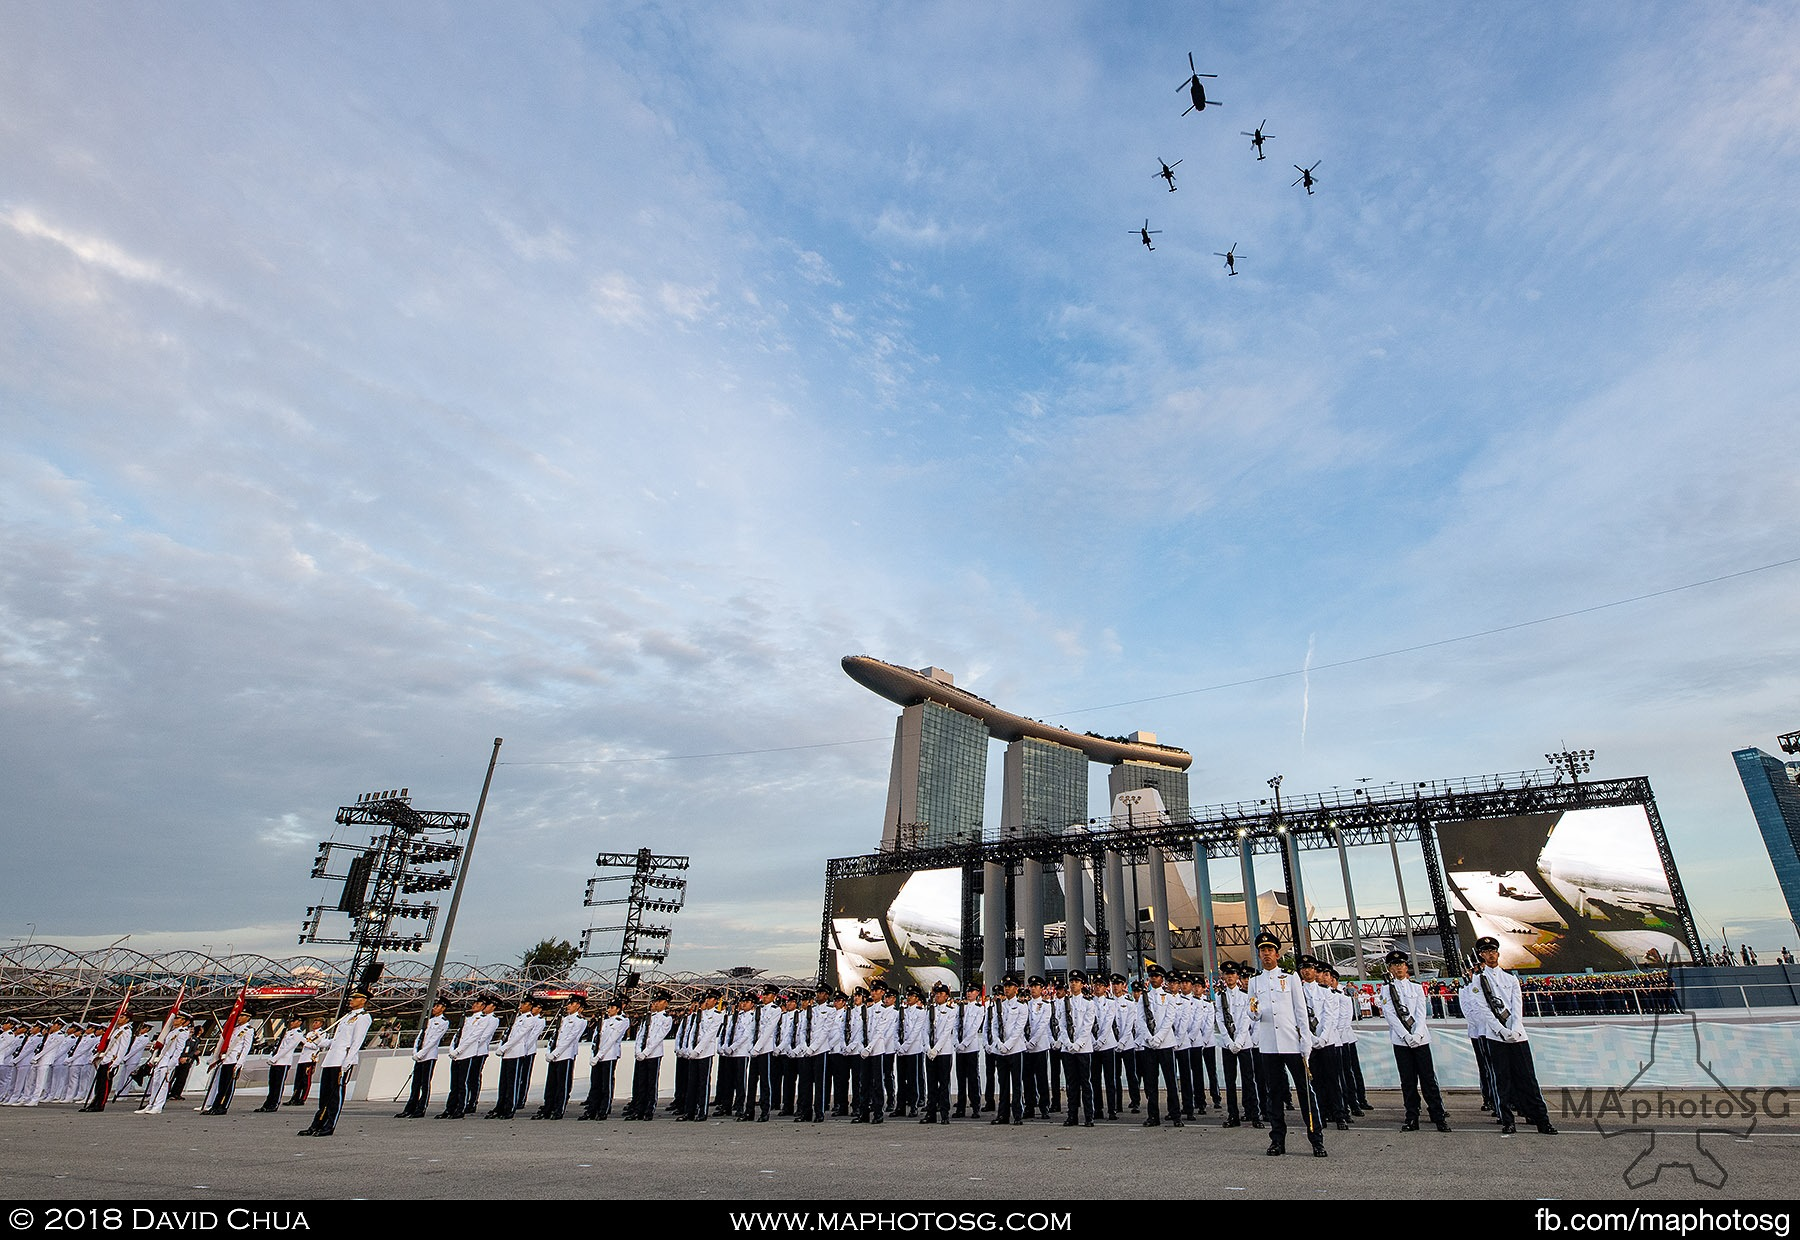 24. RSAF Helicopter Formation fly past the parade to begin the aerial display segment.